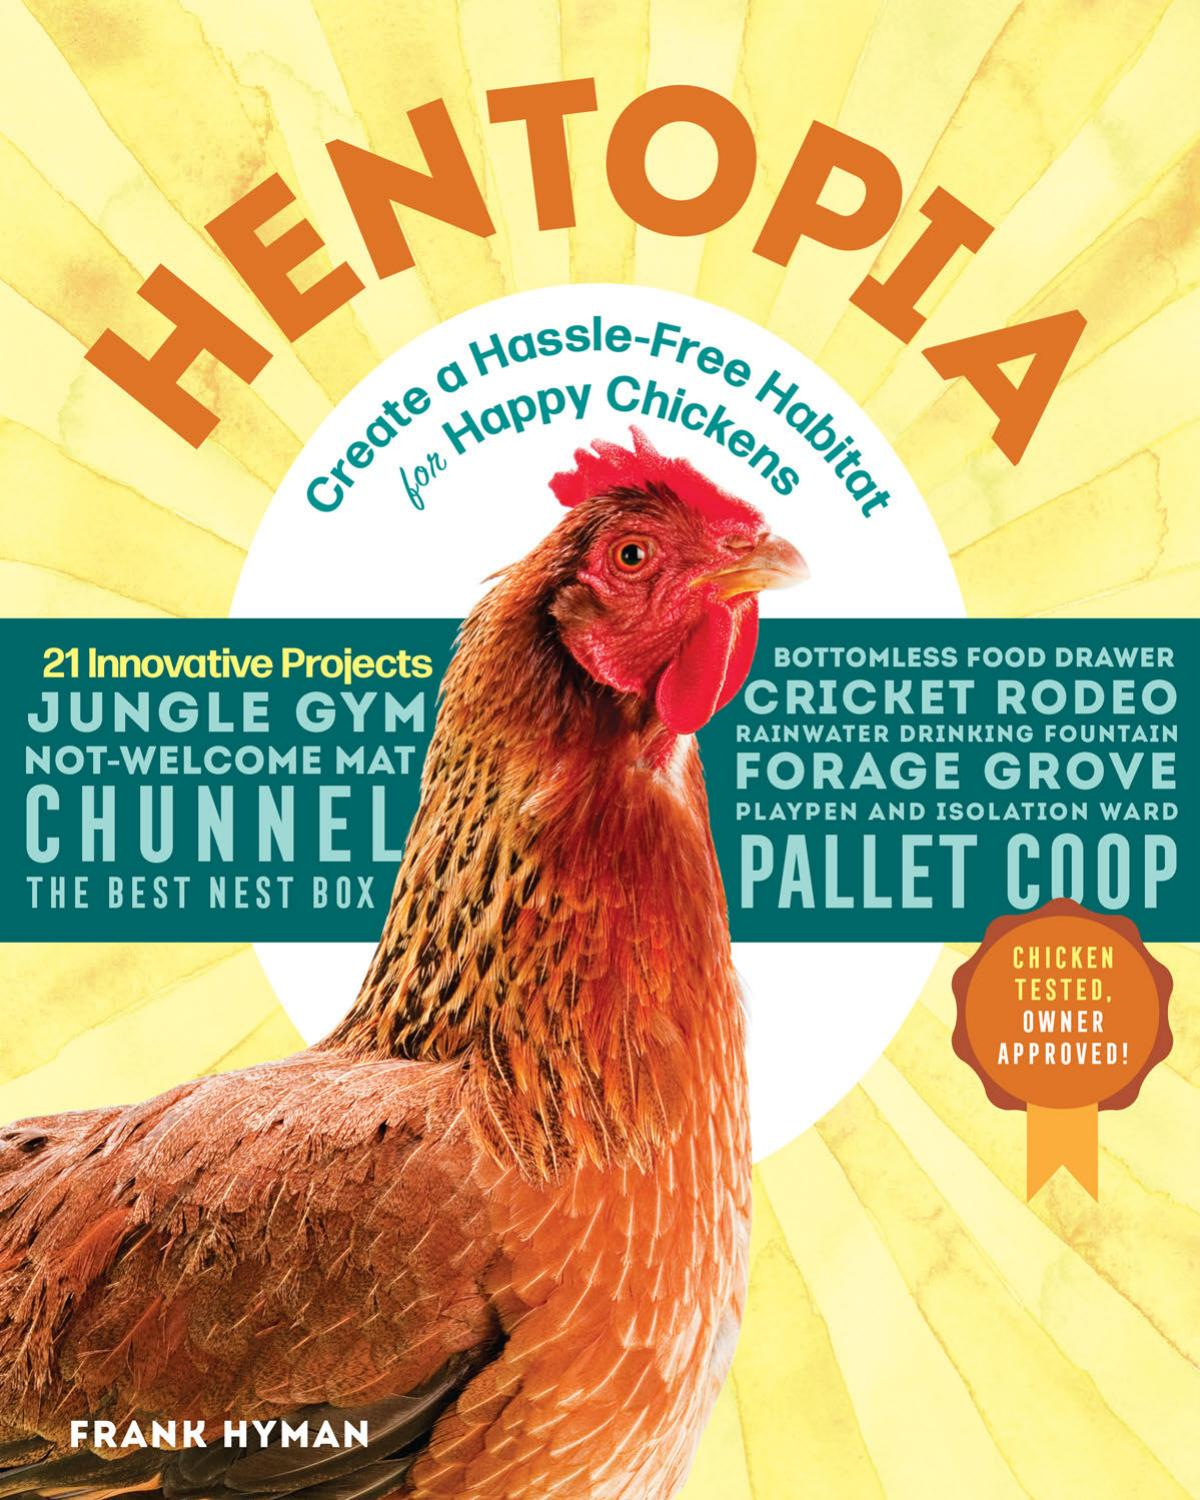 Hentopia: Create a Hassle-Free Habitat for Happy Chickens; 21 Innovative Projects